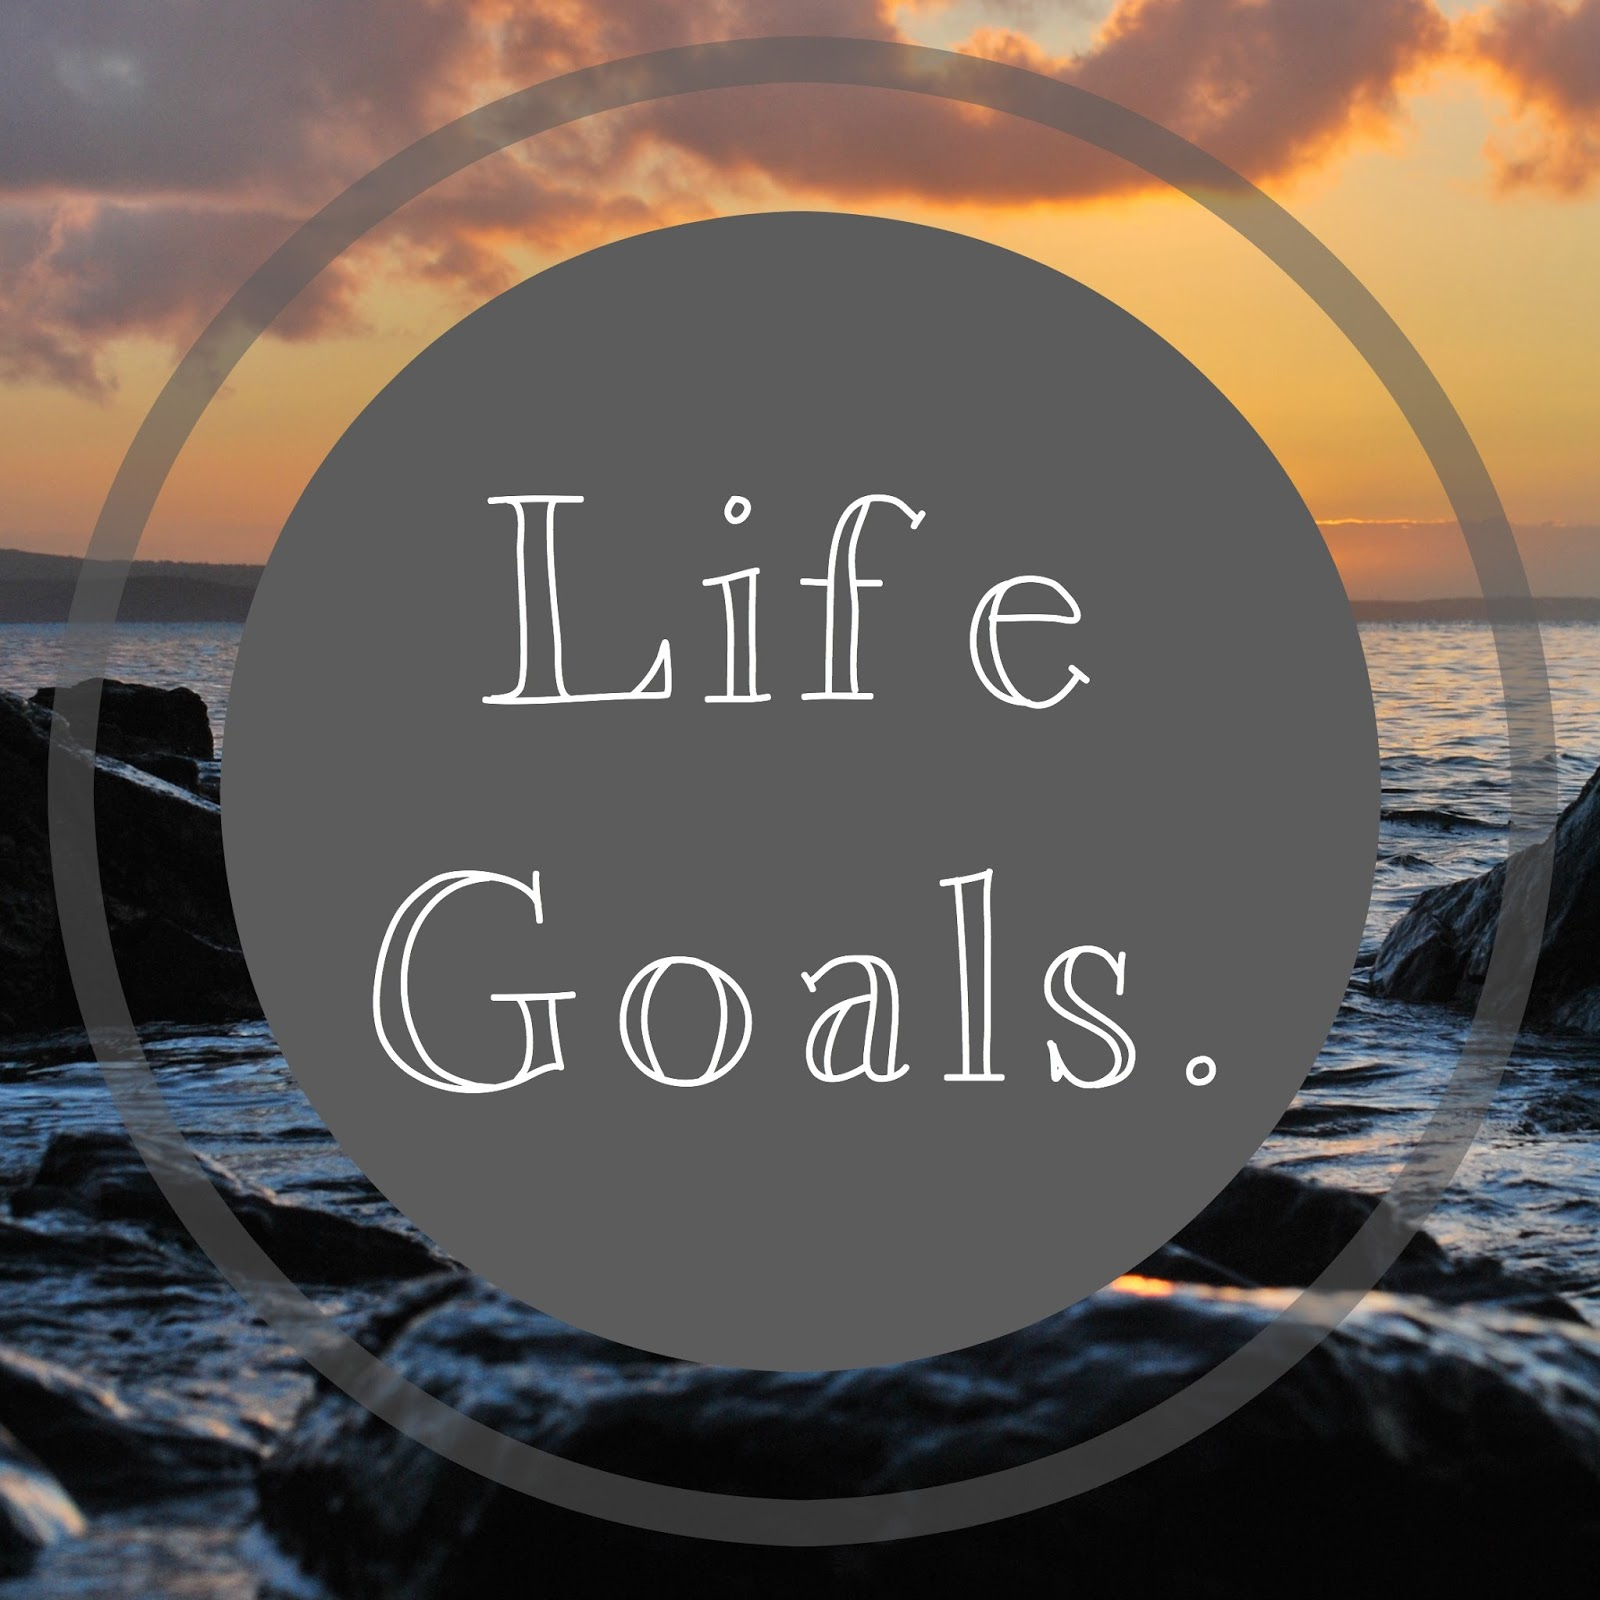 essays my life goals I have many goals in my life, and i have learned to categorize them into short term, midterm, and long term goals doing so helps me keep my focus on what is.